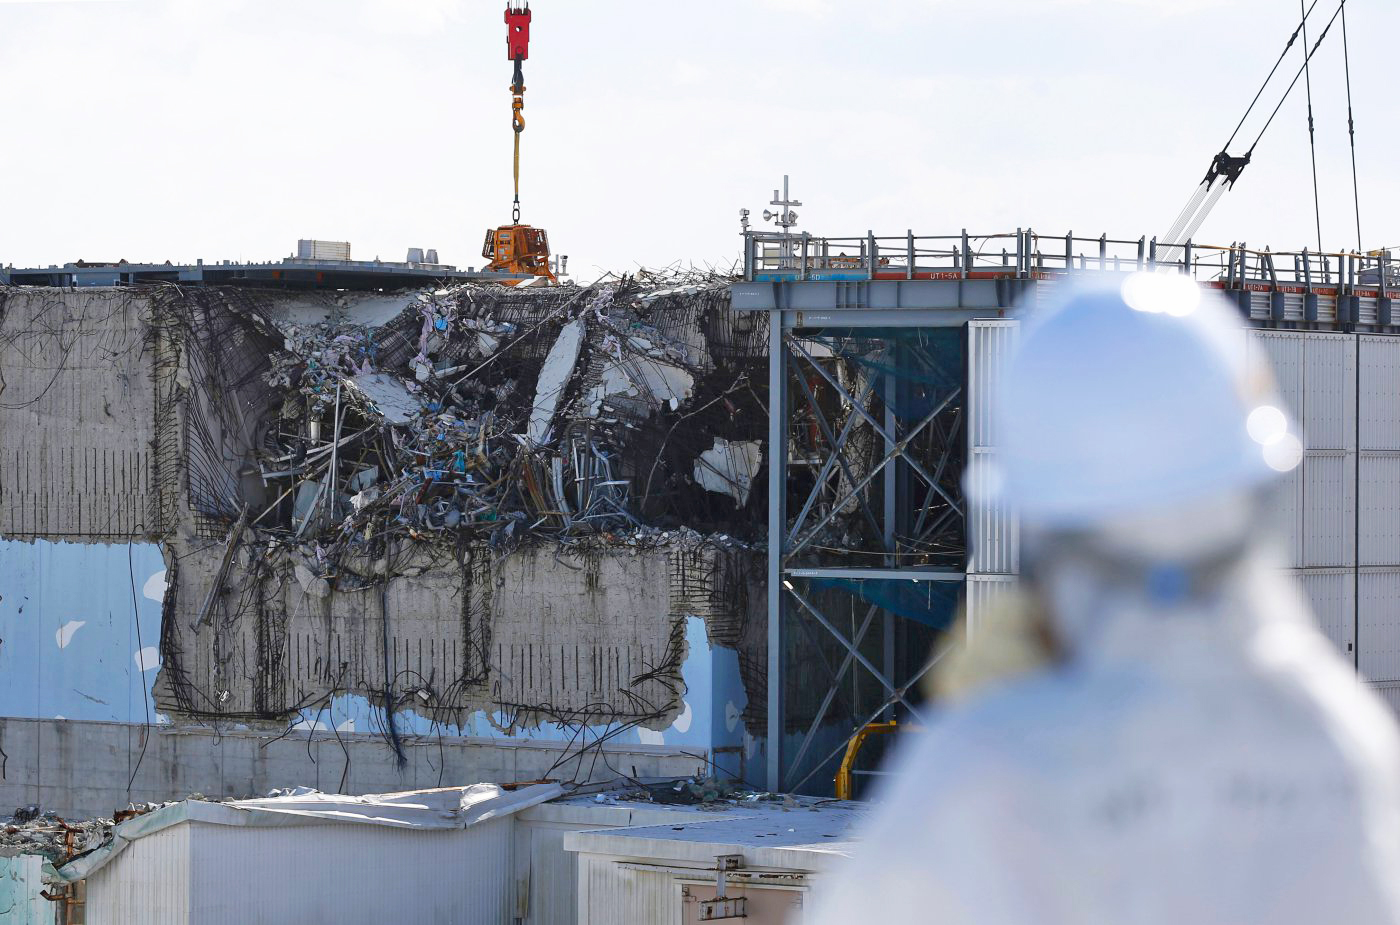 A closer look at the damaged Fukushima No. 3 reactor. Photo:  Engadget